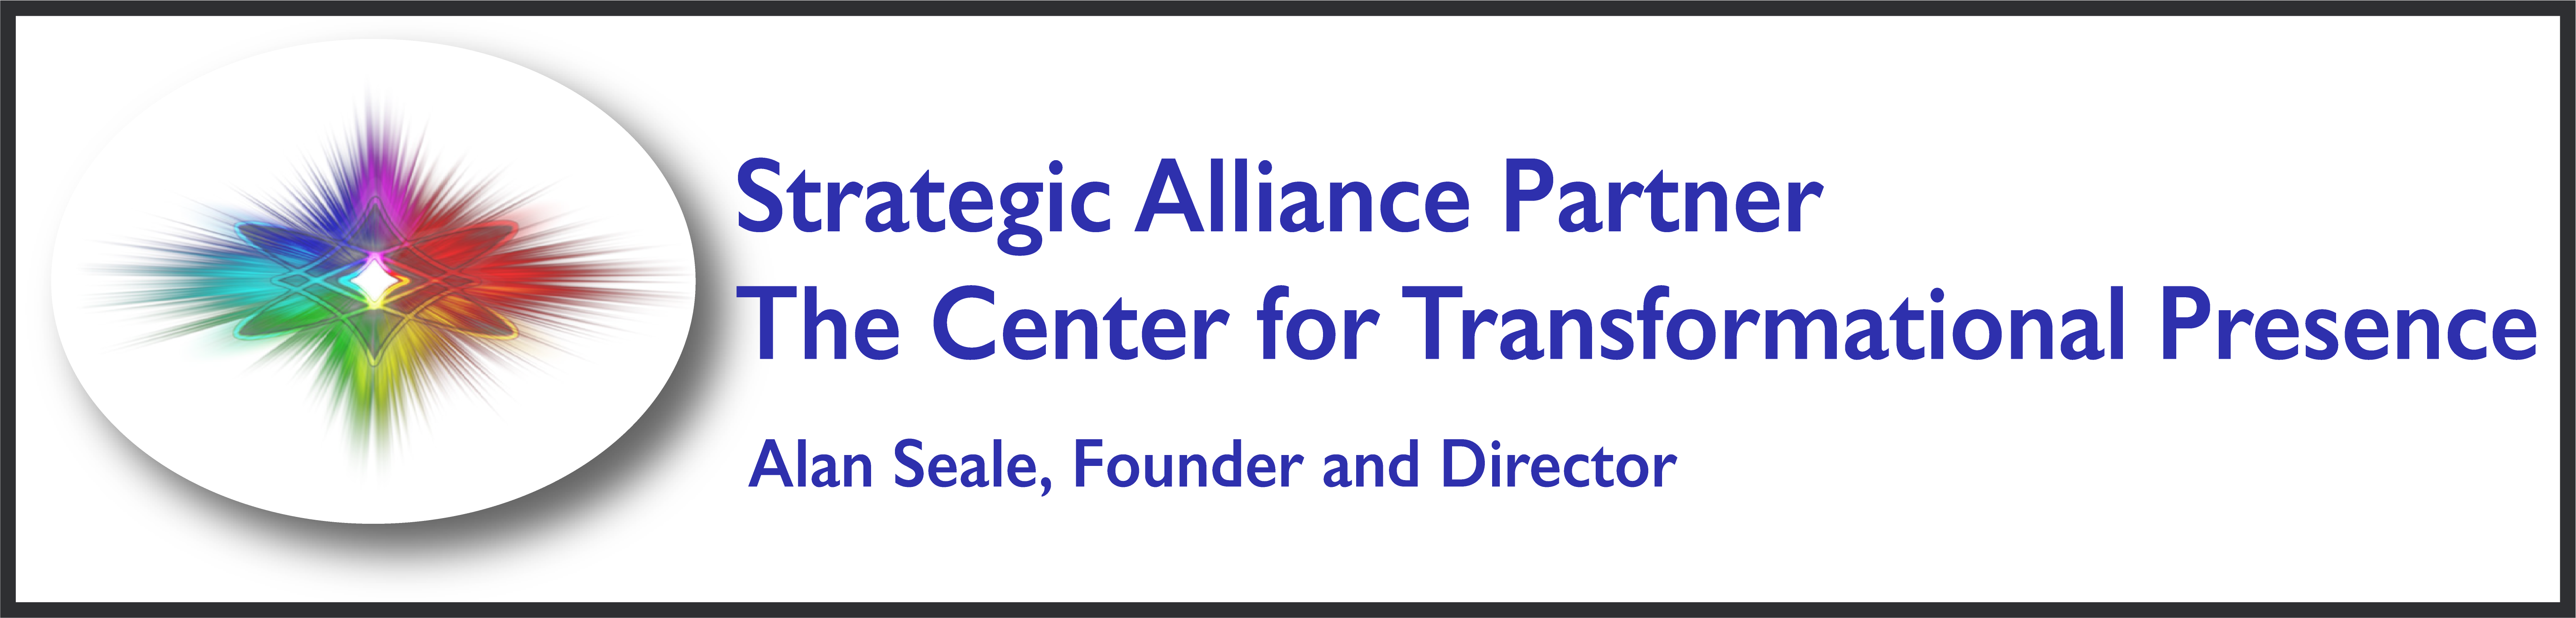 Strategic Alliance Partner Banner